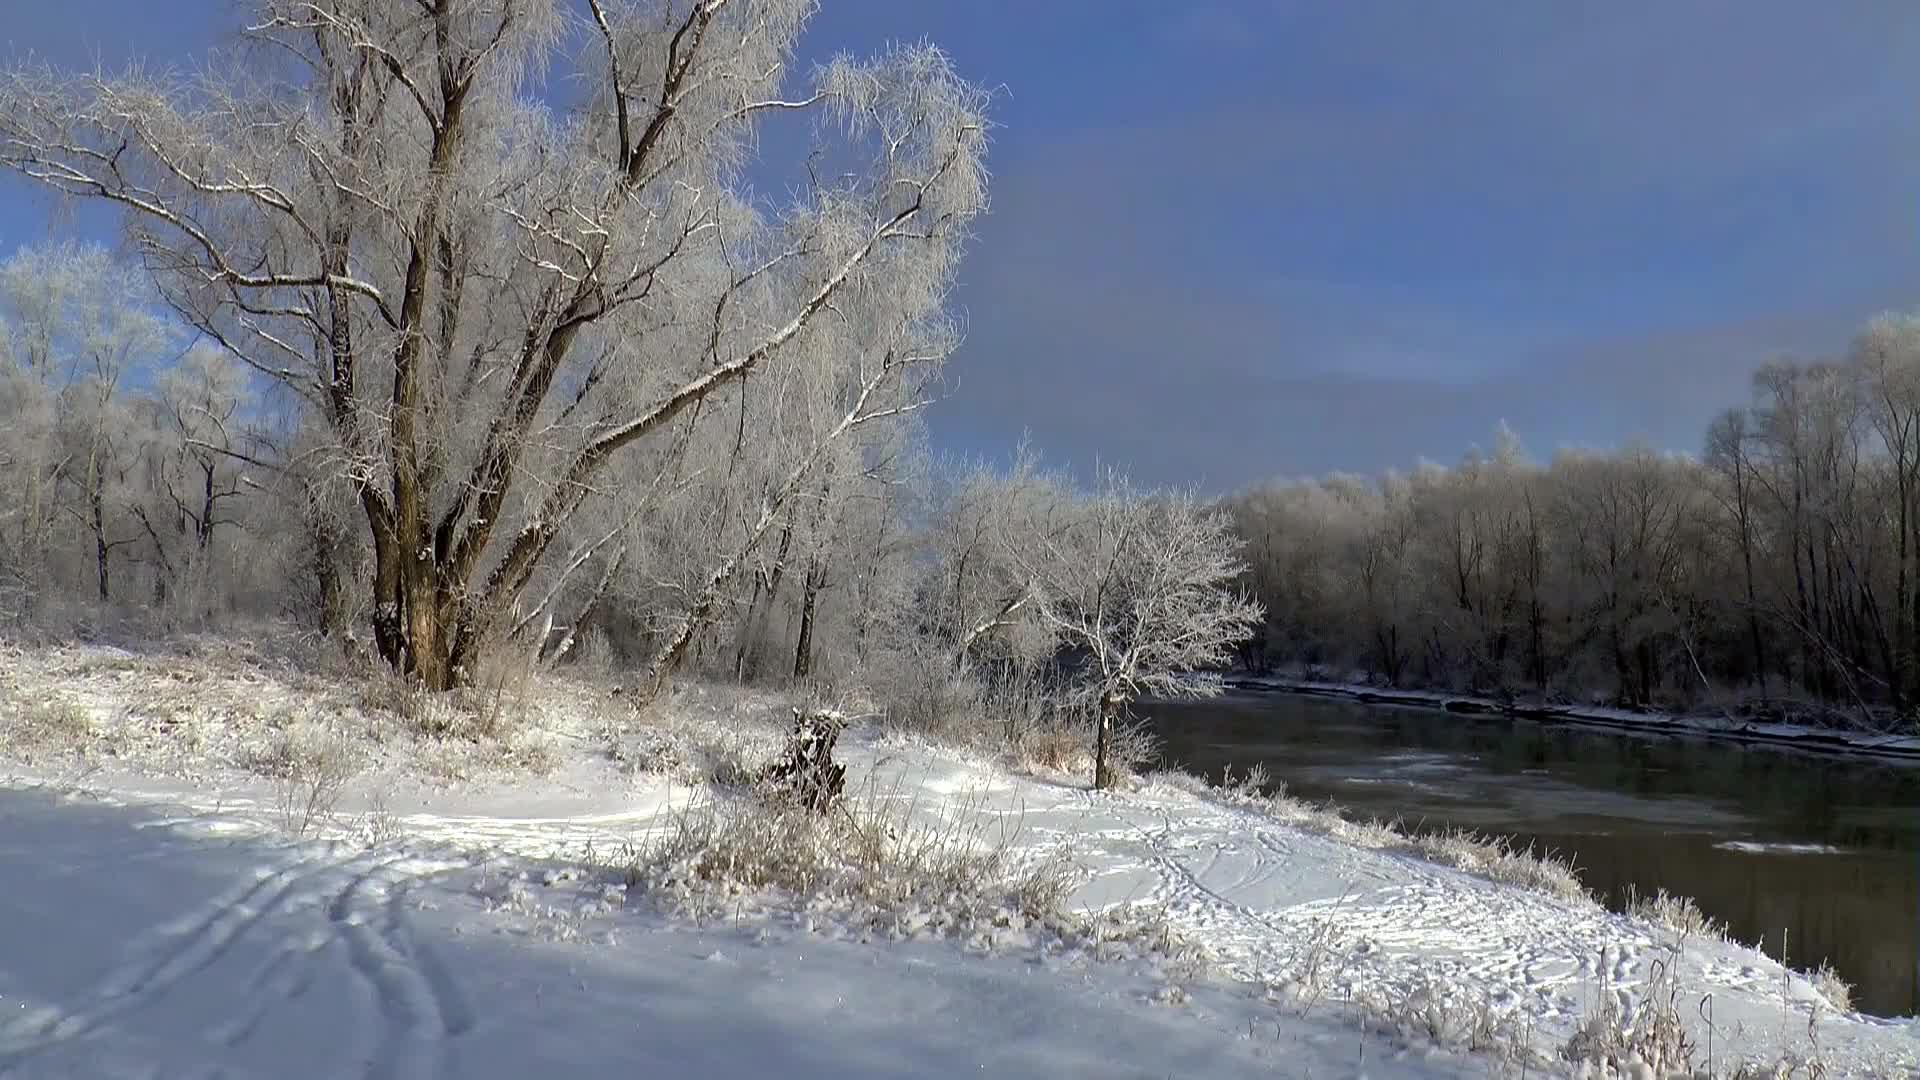 Video of flowing river during winter